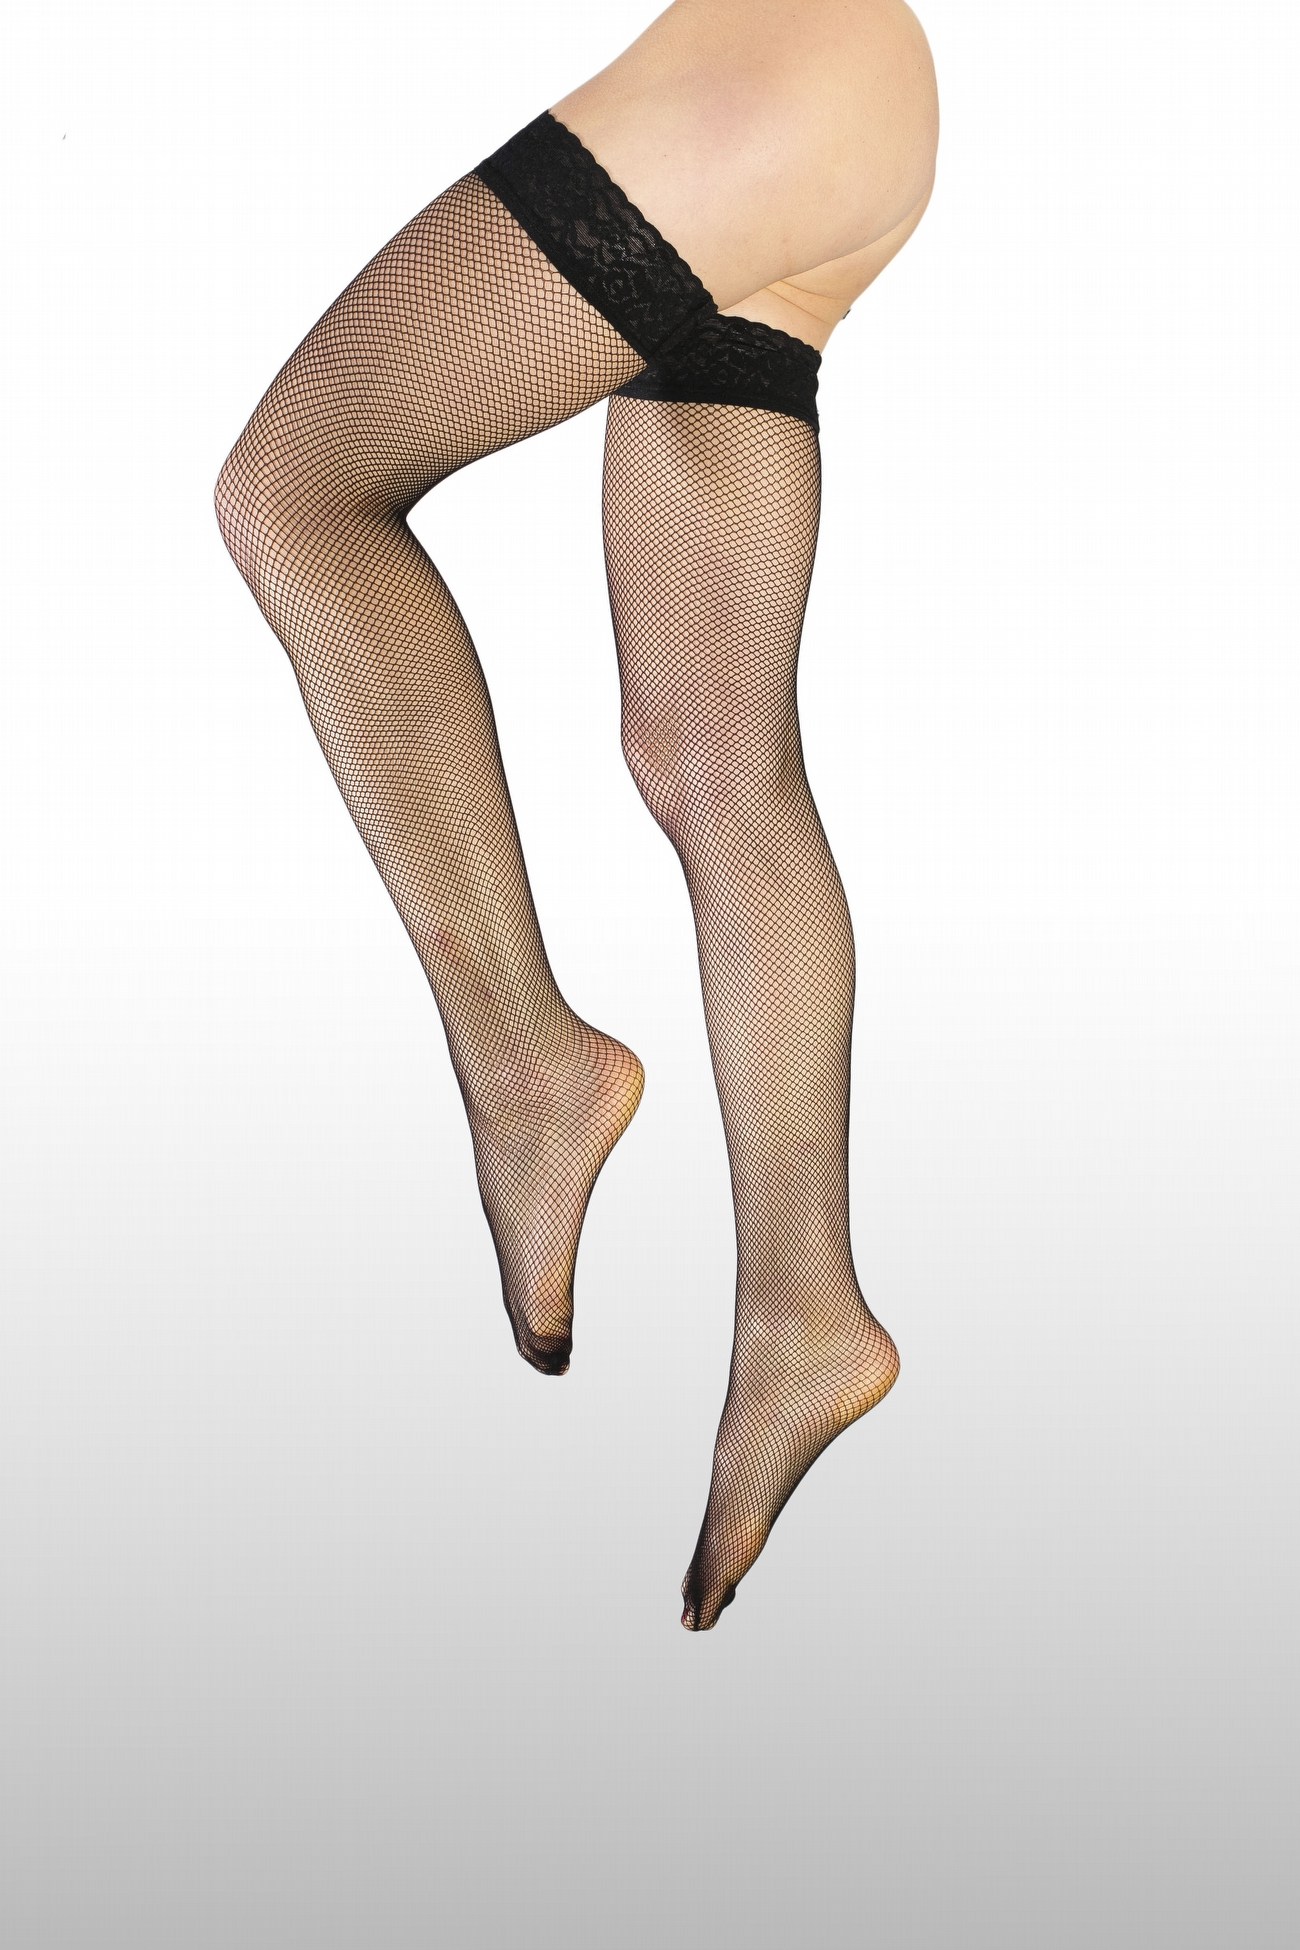 compra online Hold ups GIOIA